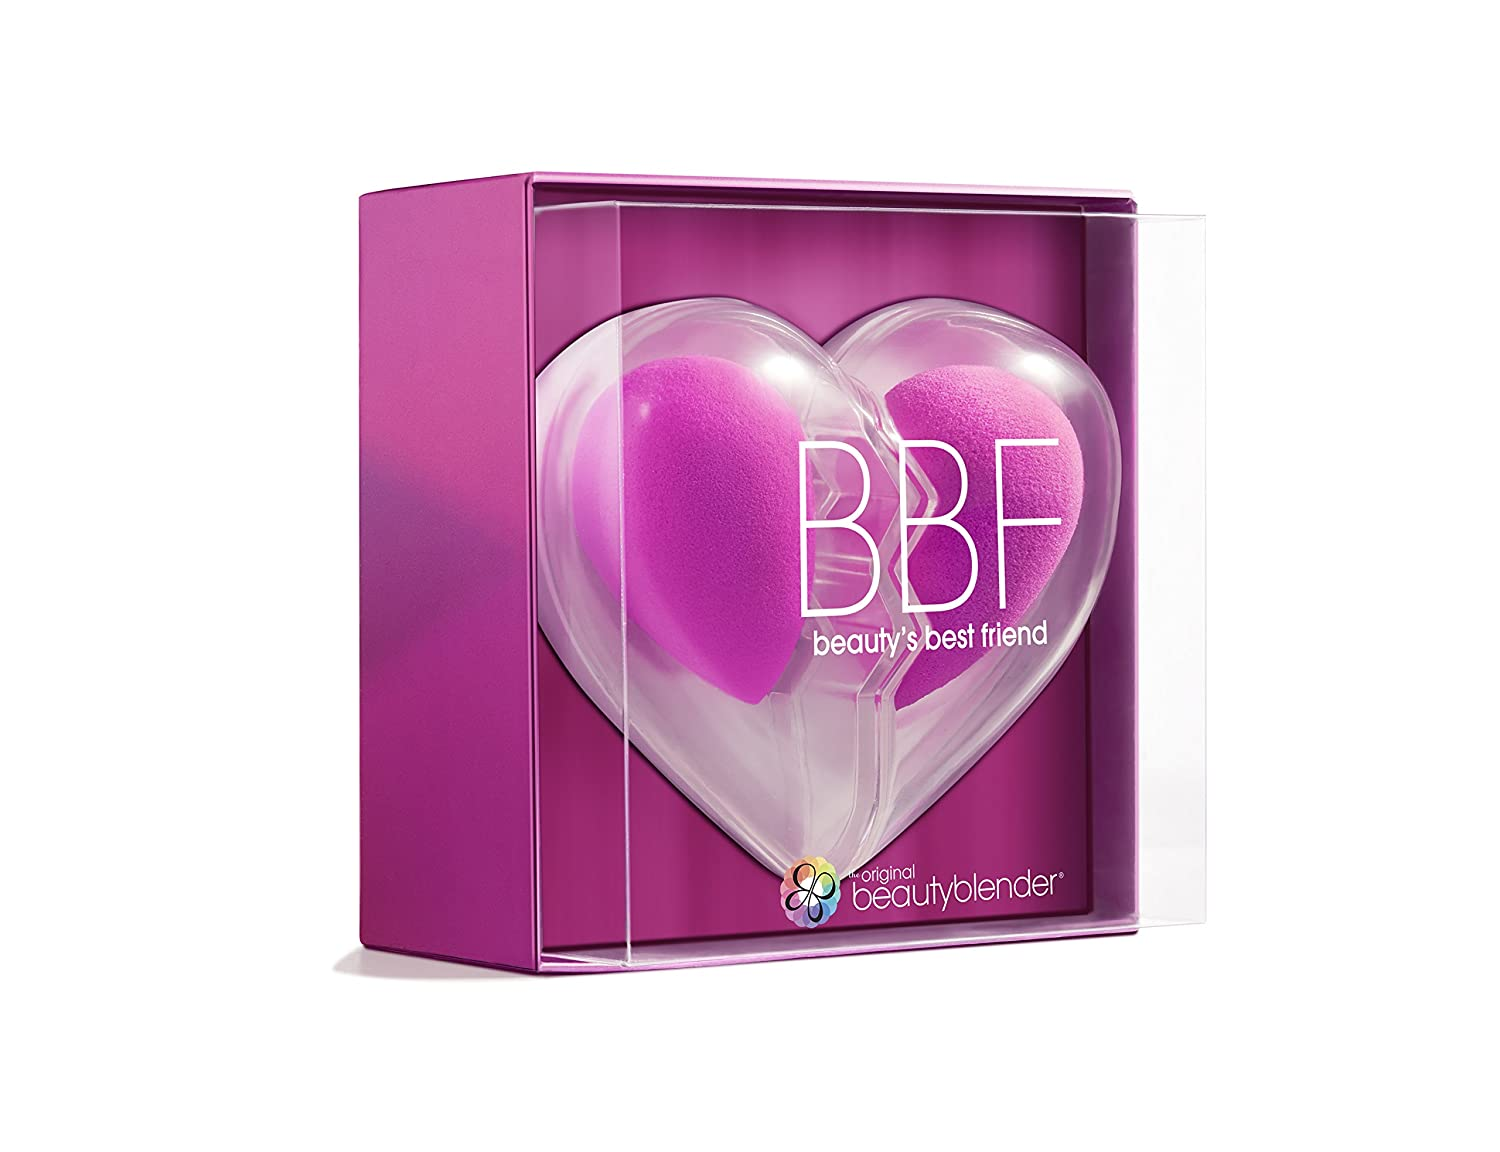 beautyblender BBF Kit (two original beautyblenders with cases) Rea.deeming Beauty Inc. 20819